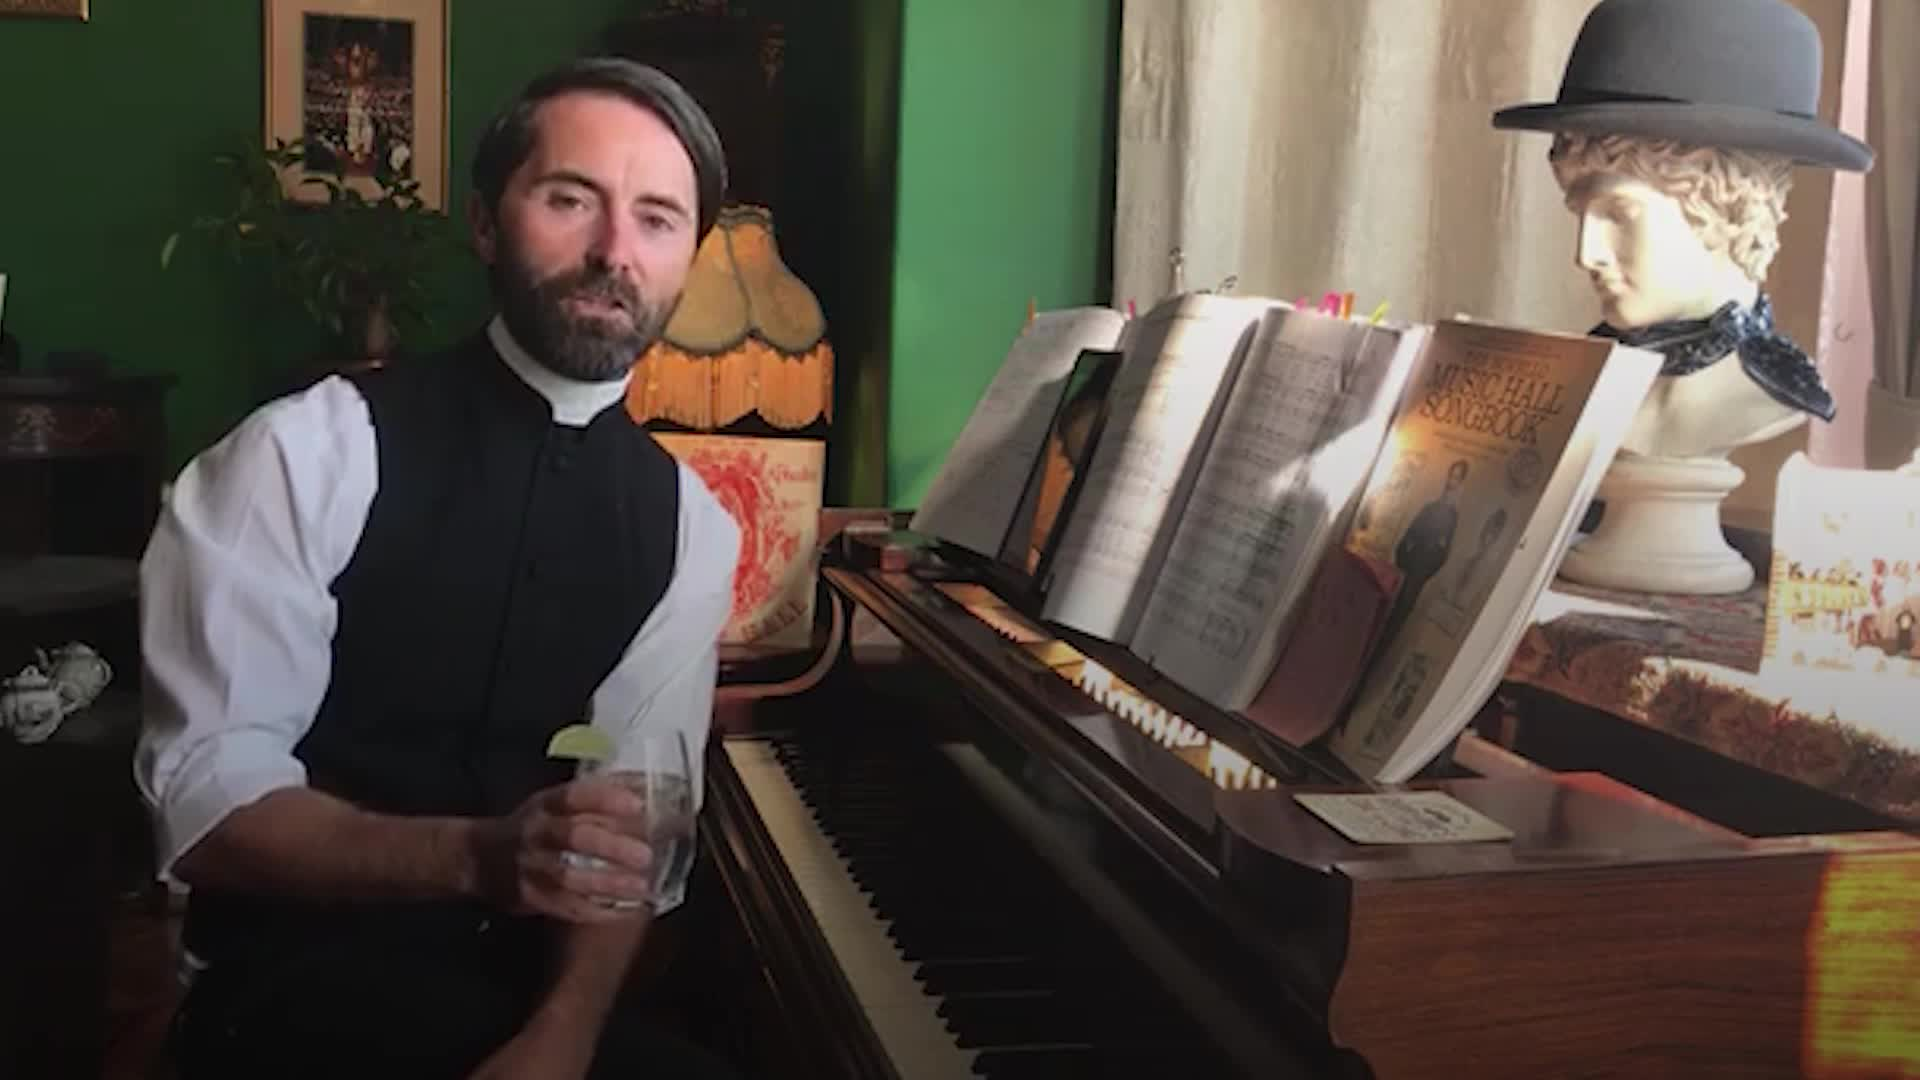 Bartender Turned Vicar Has Raised Spirits With Online Pimms And Hymns Lockdown Singalongs